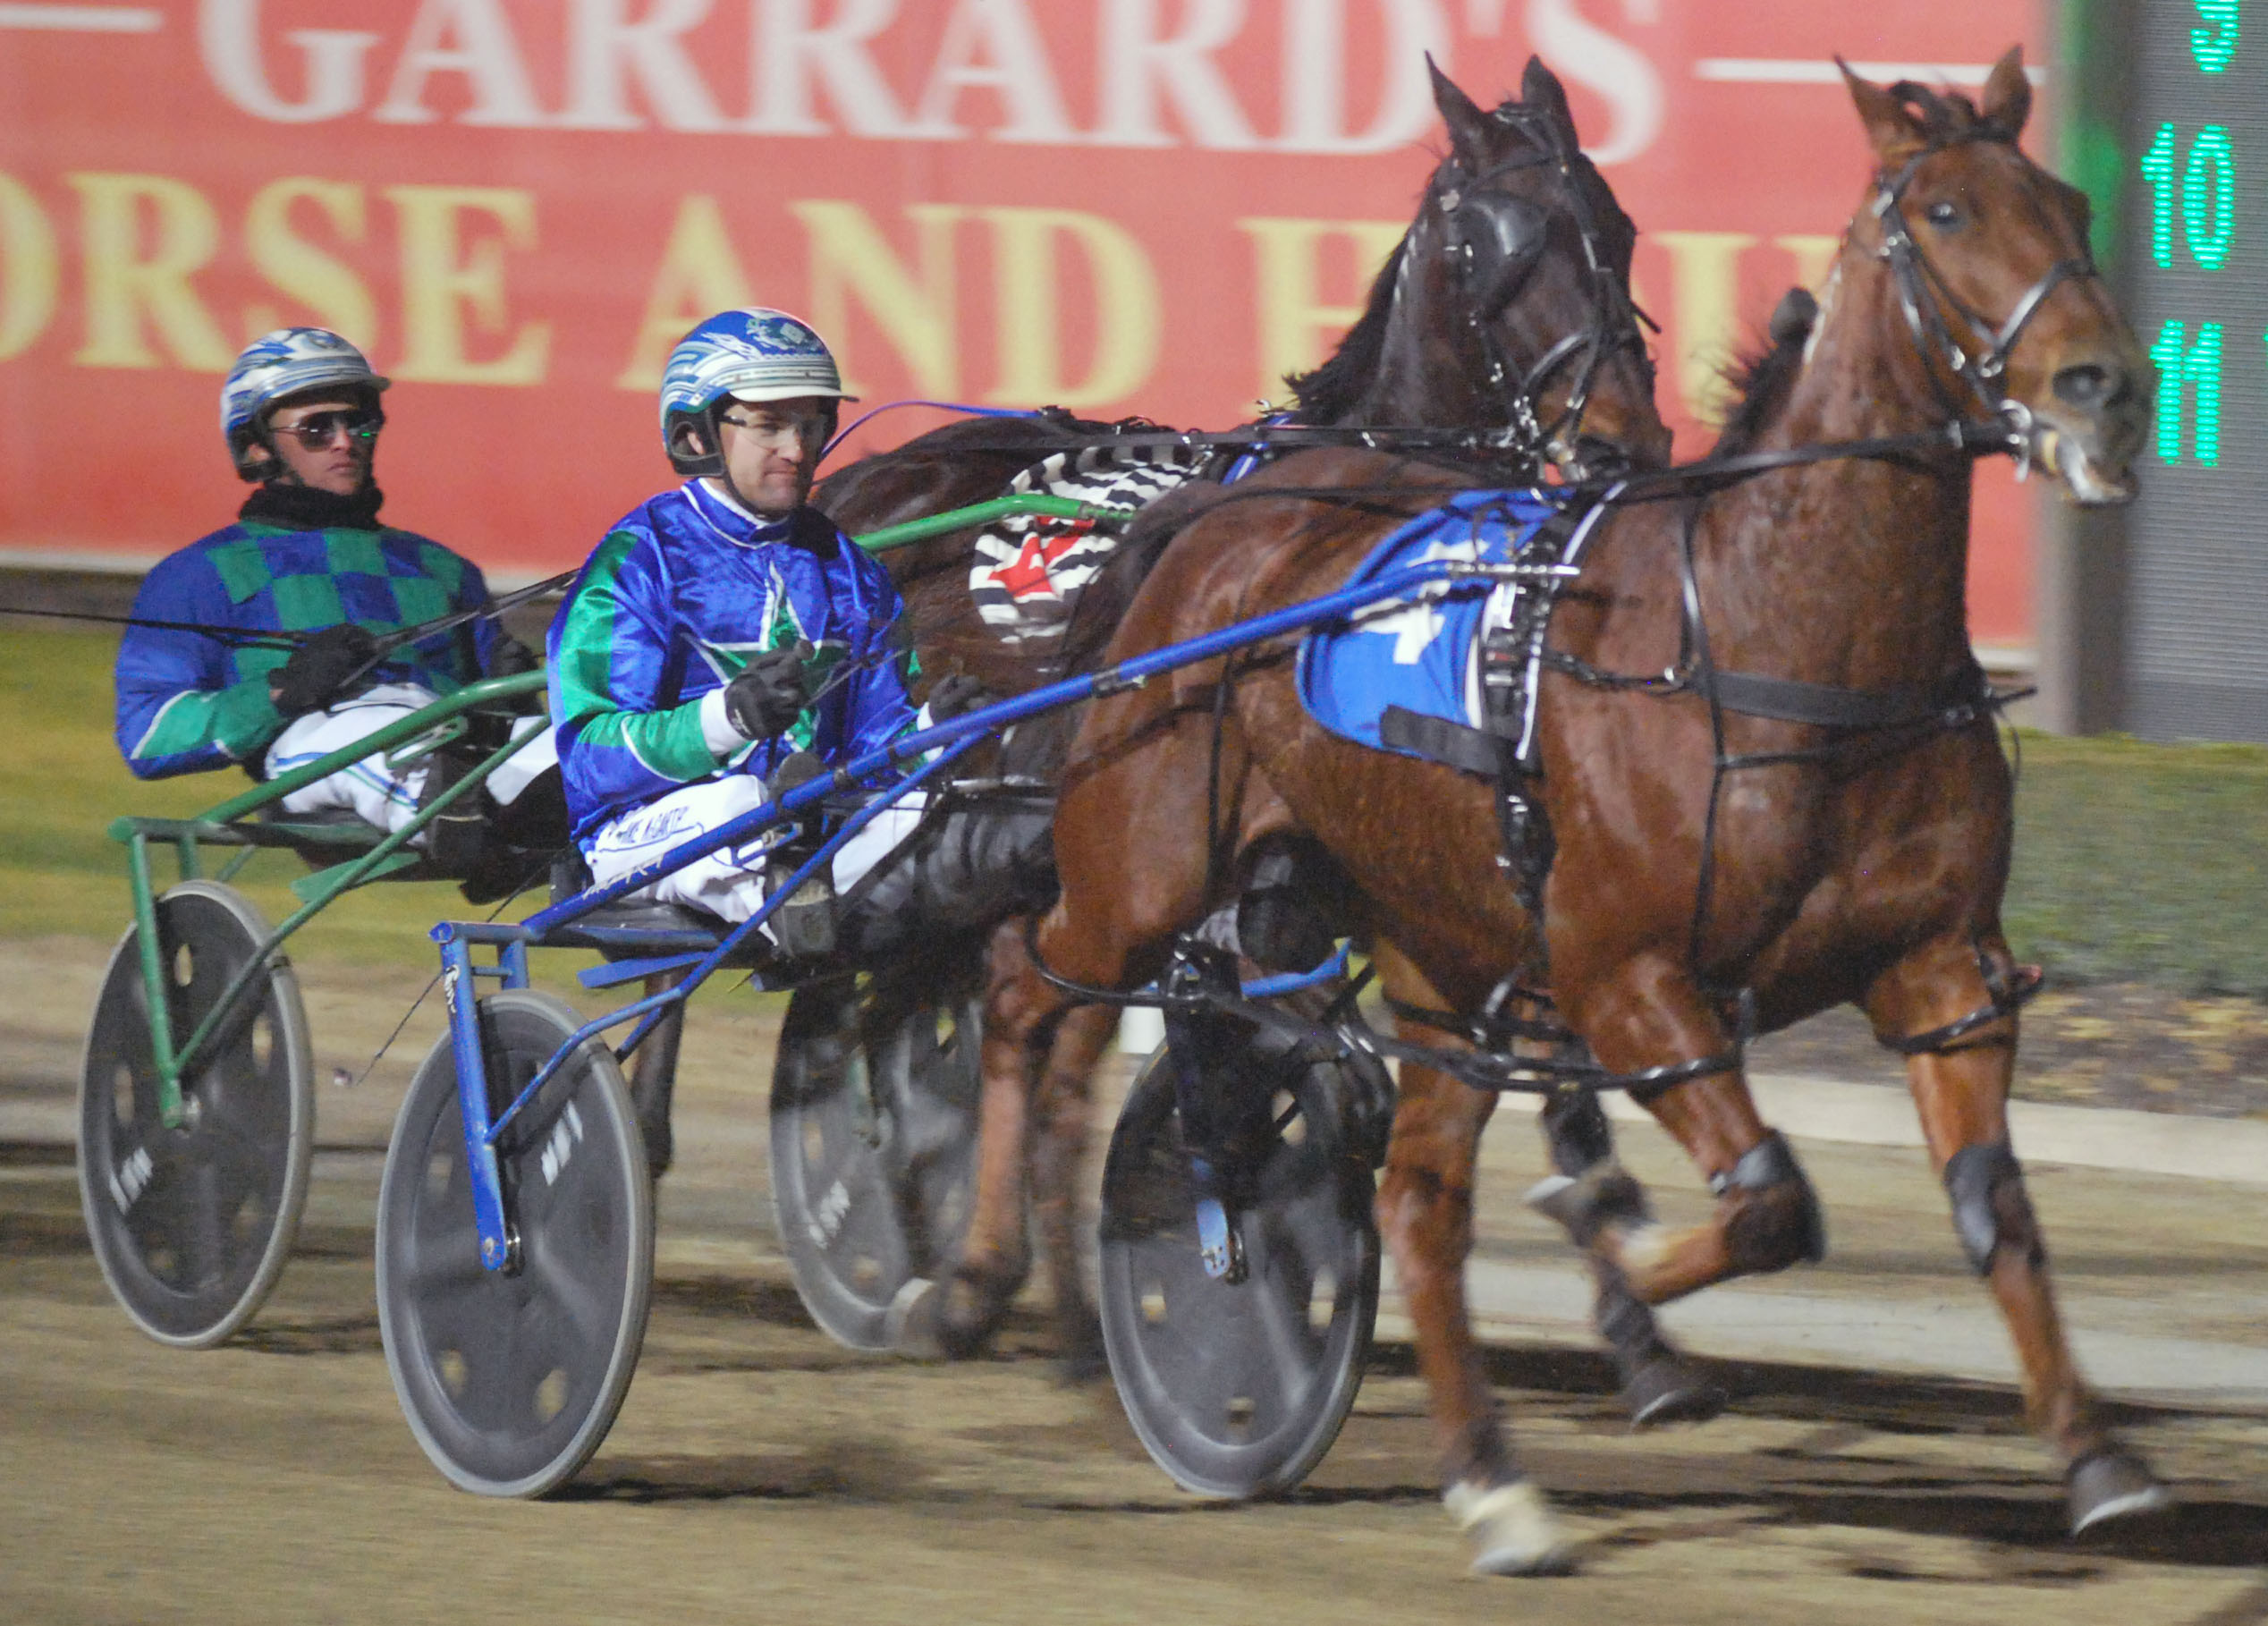 Preview: Tabcorp Park @ Club Menangle, August 15